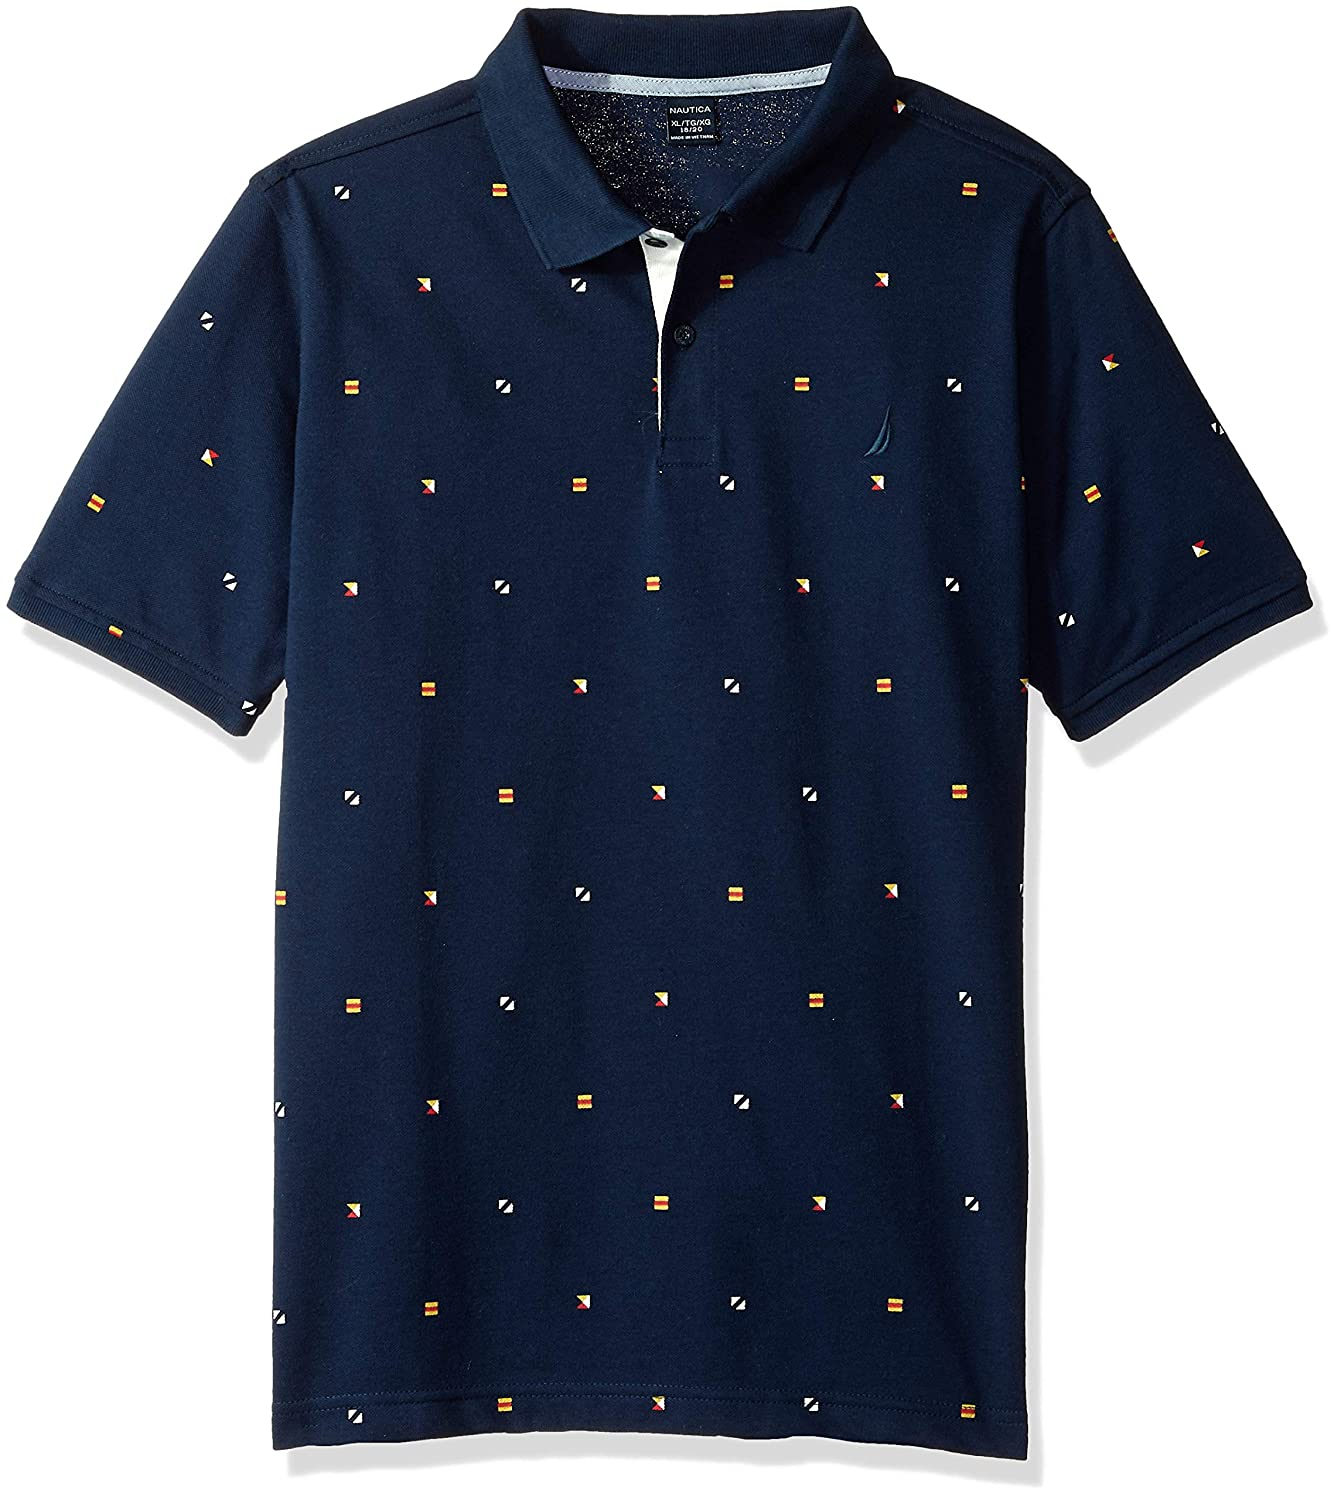 Nautica Boys' Short Sleeve Printed Polo Shirt